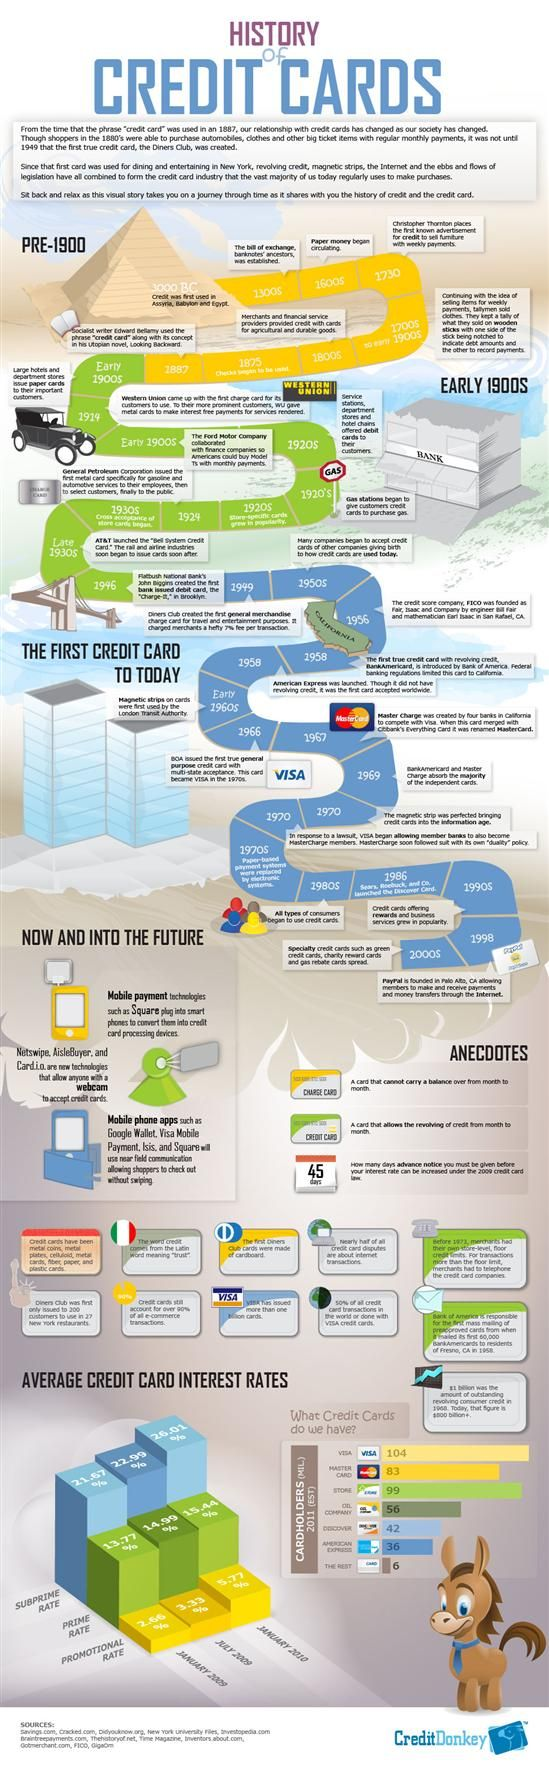 History of Credit Cards: Great for teaching about interest and prime/subprime!